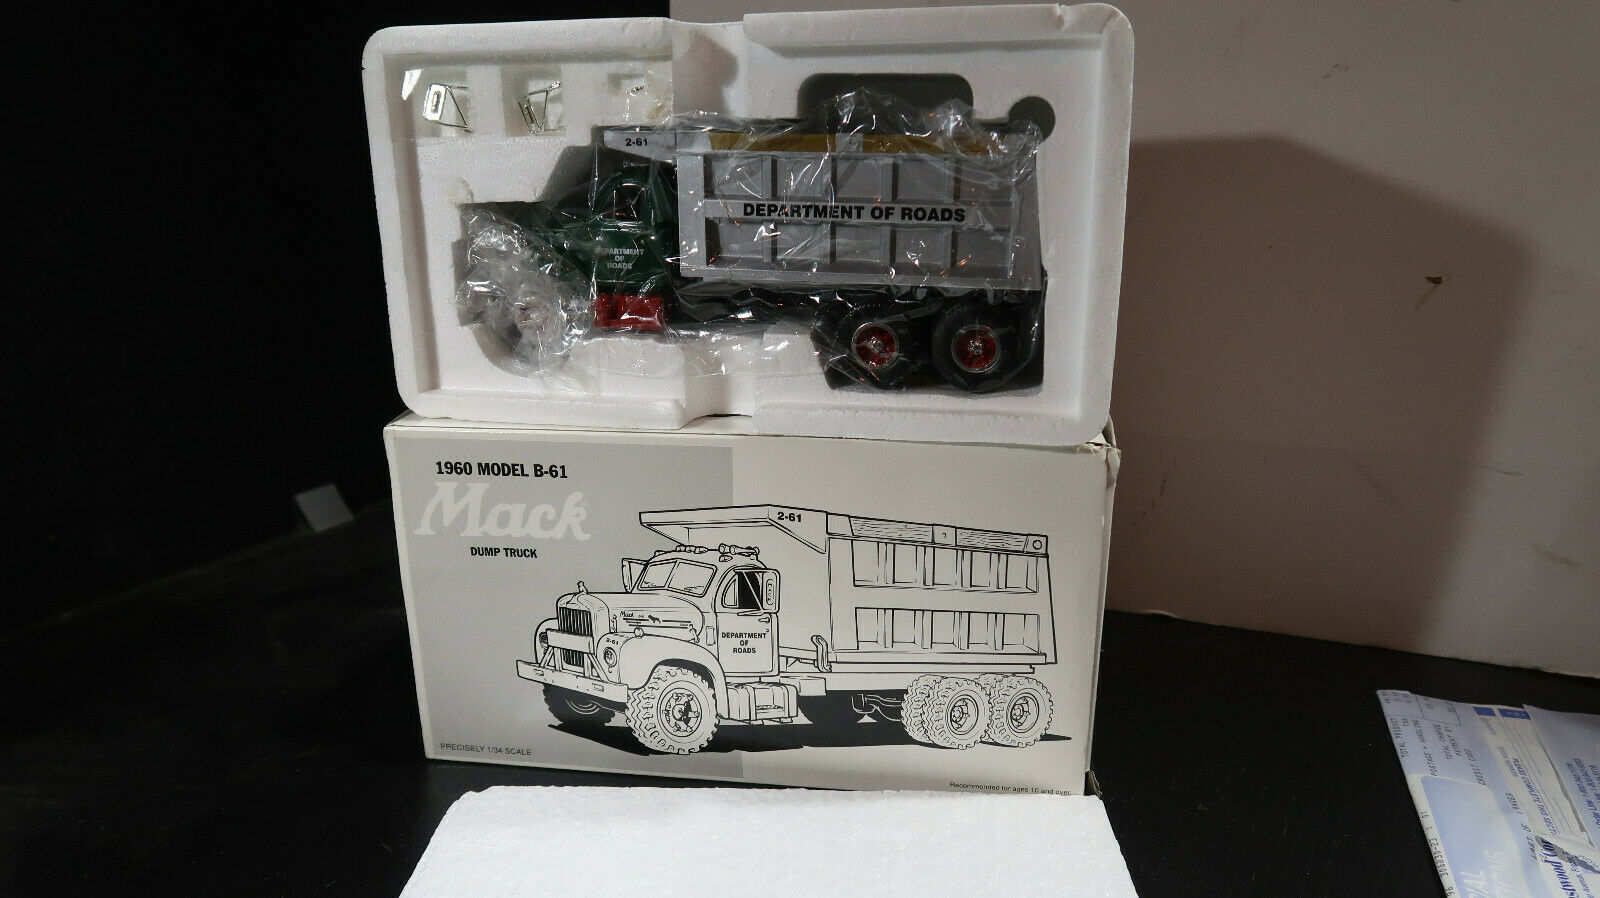 First Gear 1st 1960 Model B-61 mack Dump Truck Department of Roads UNUSED